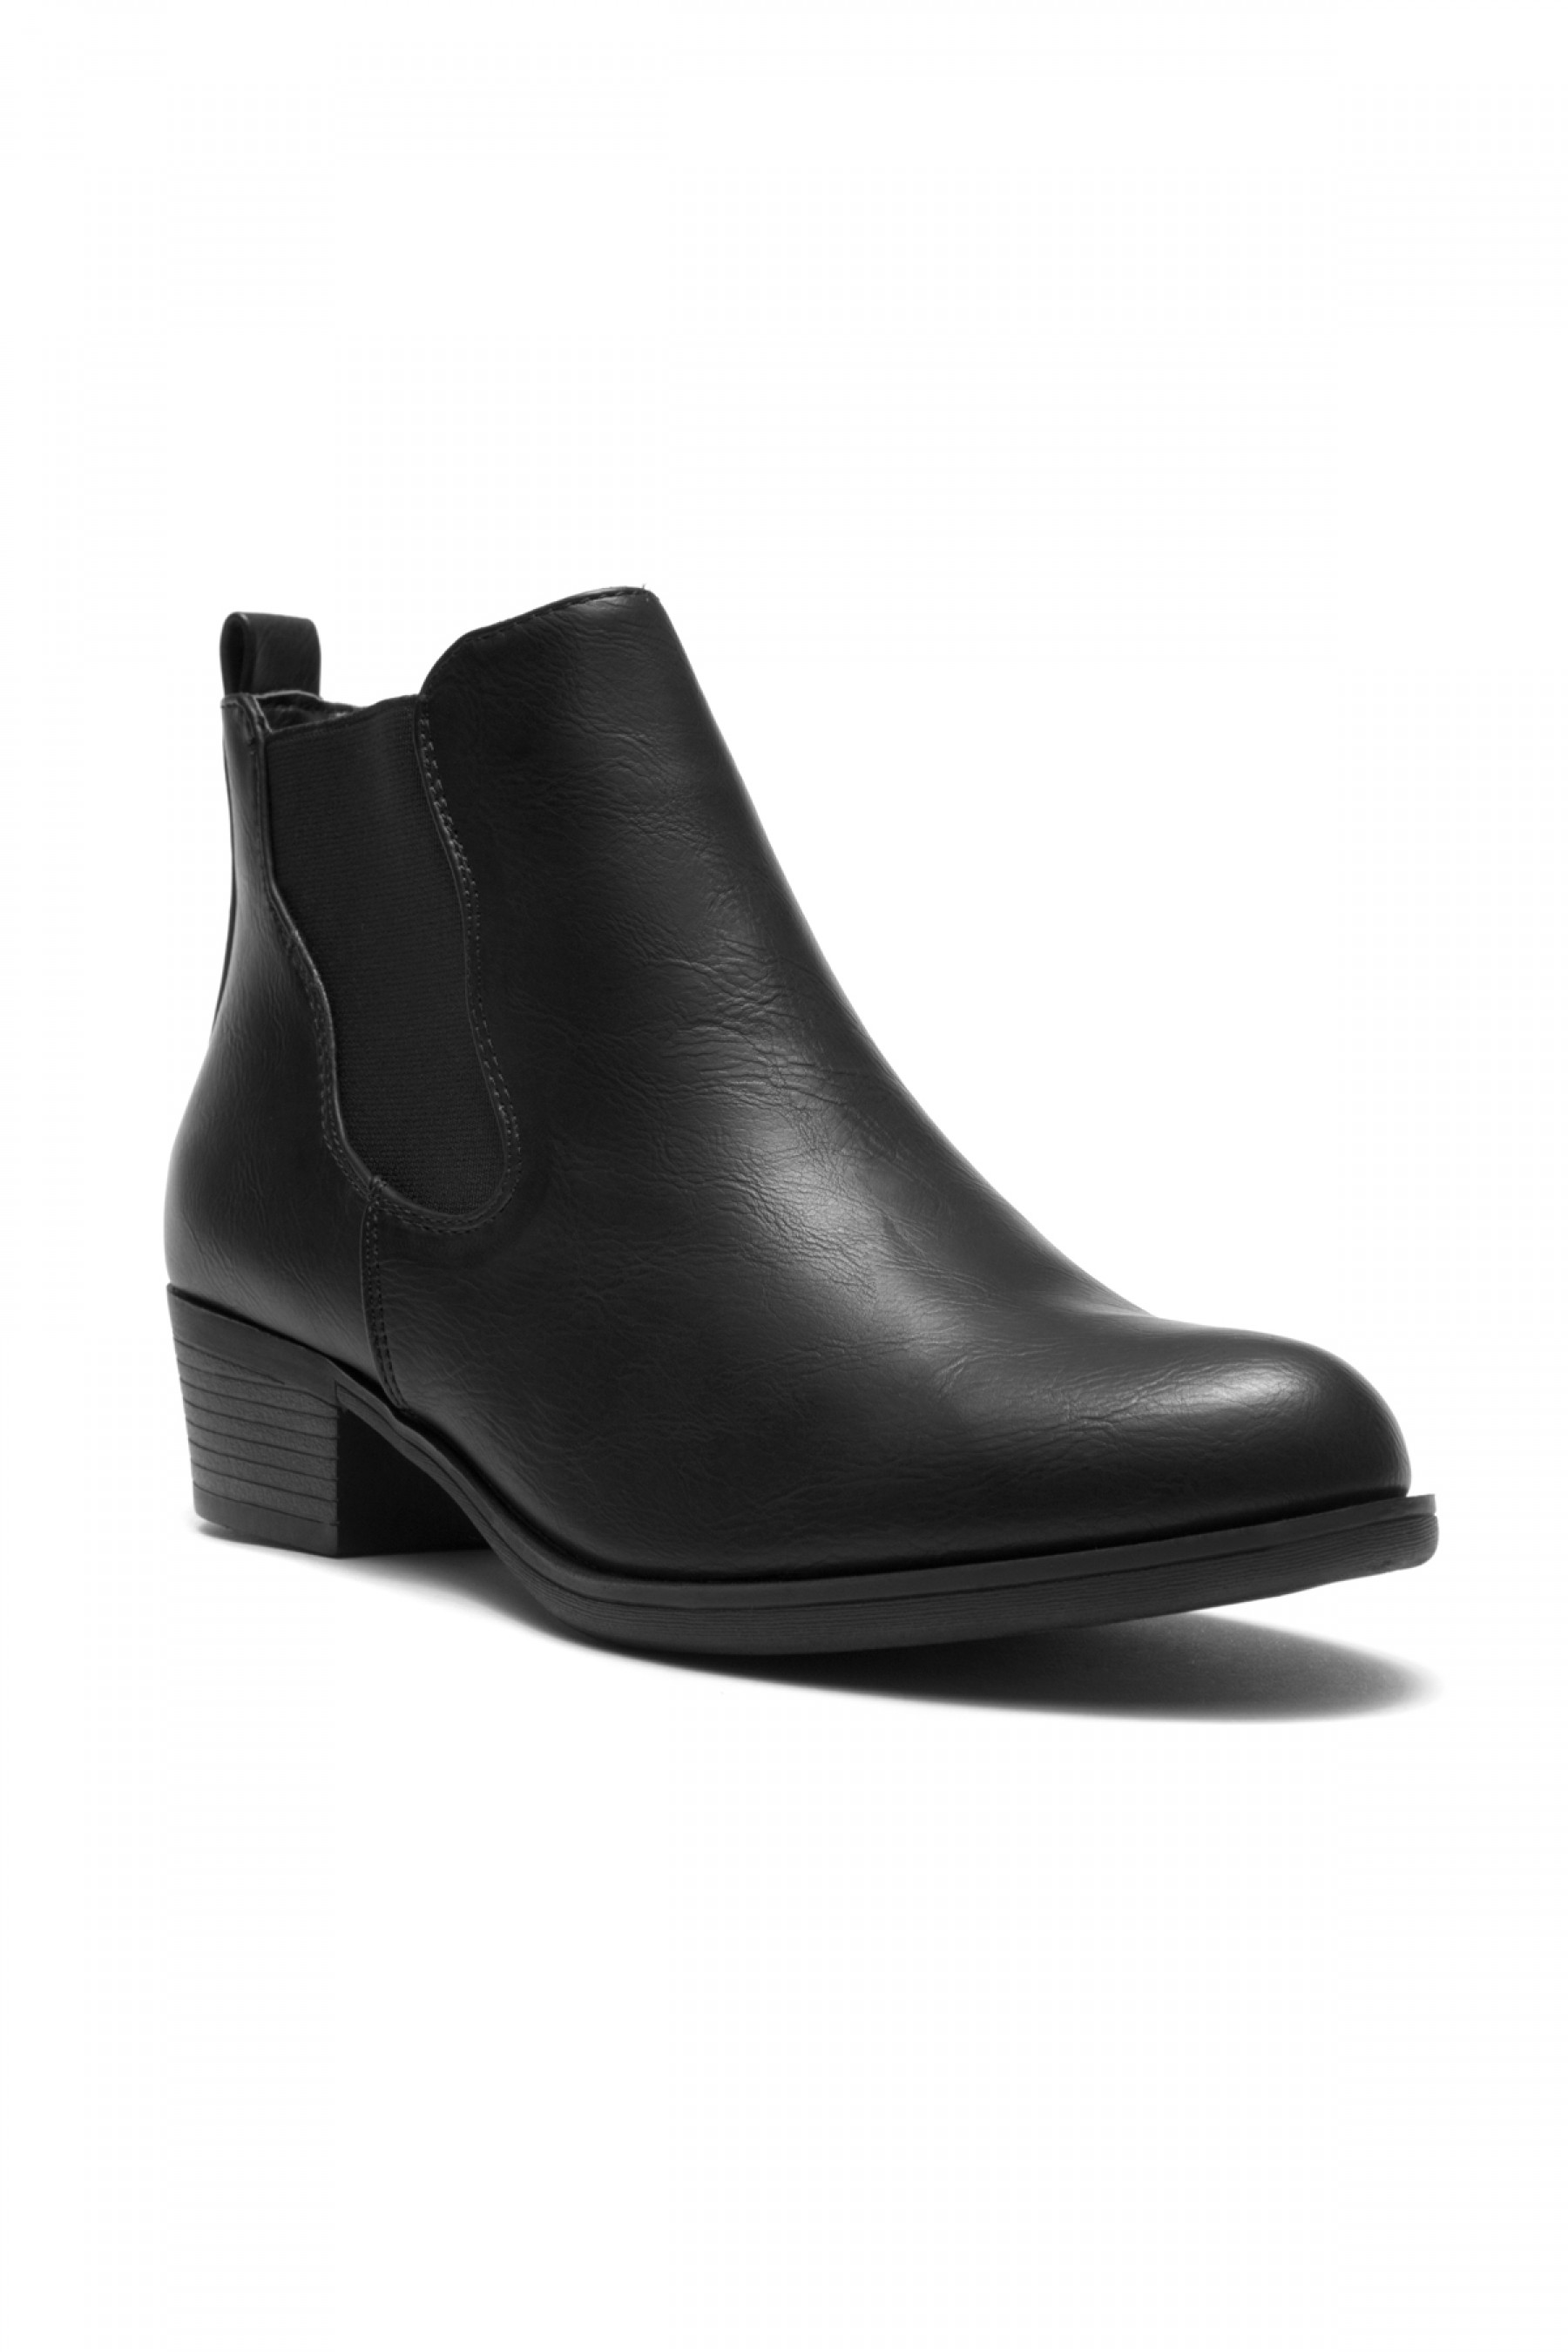 Womens Chelsea Boots Elastic Panel Buckle Ankle Booties